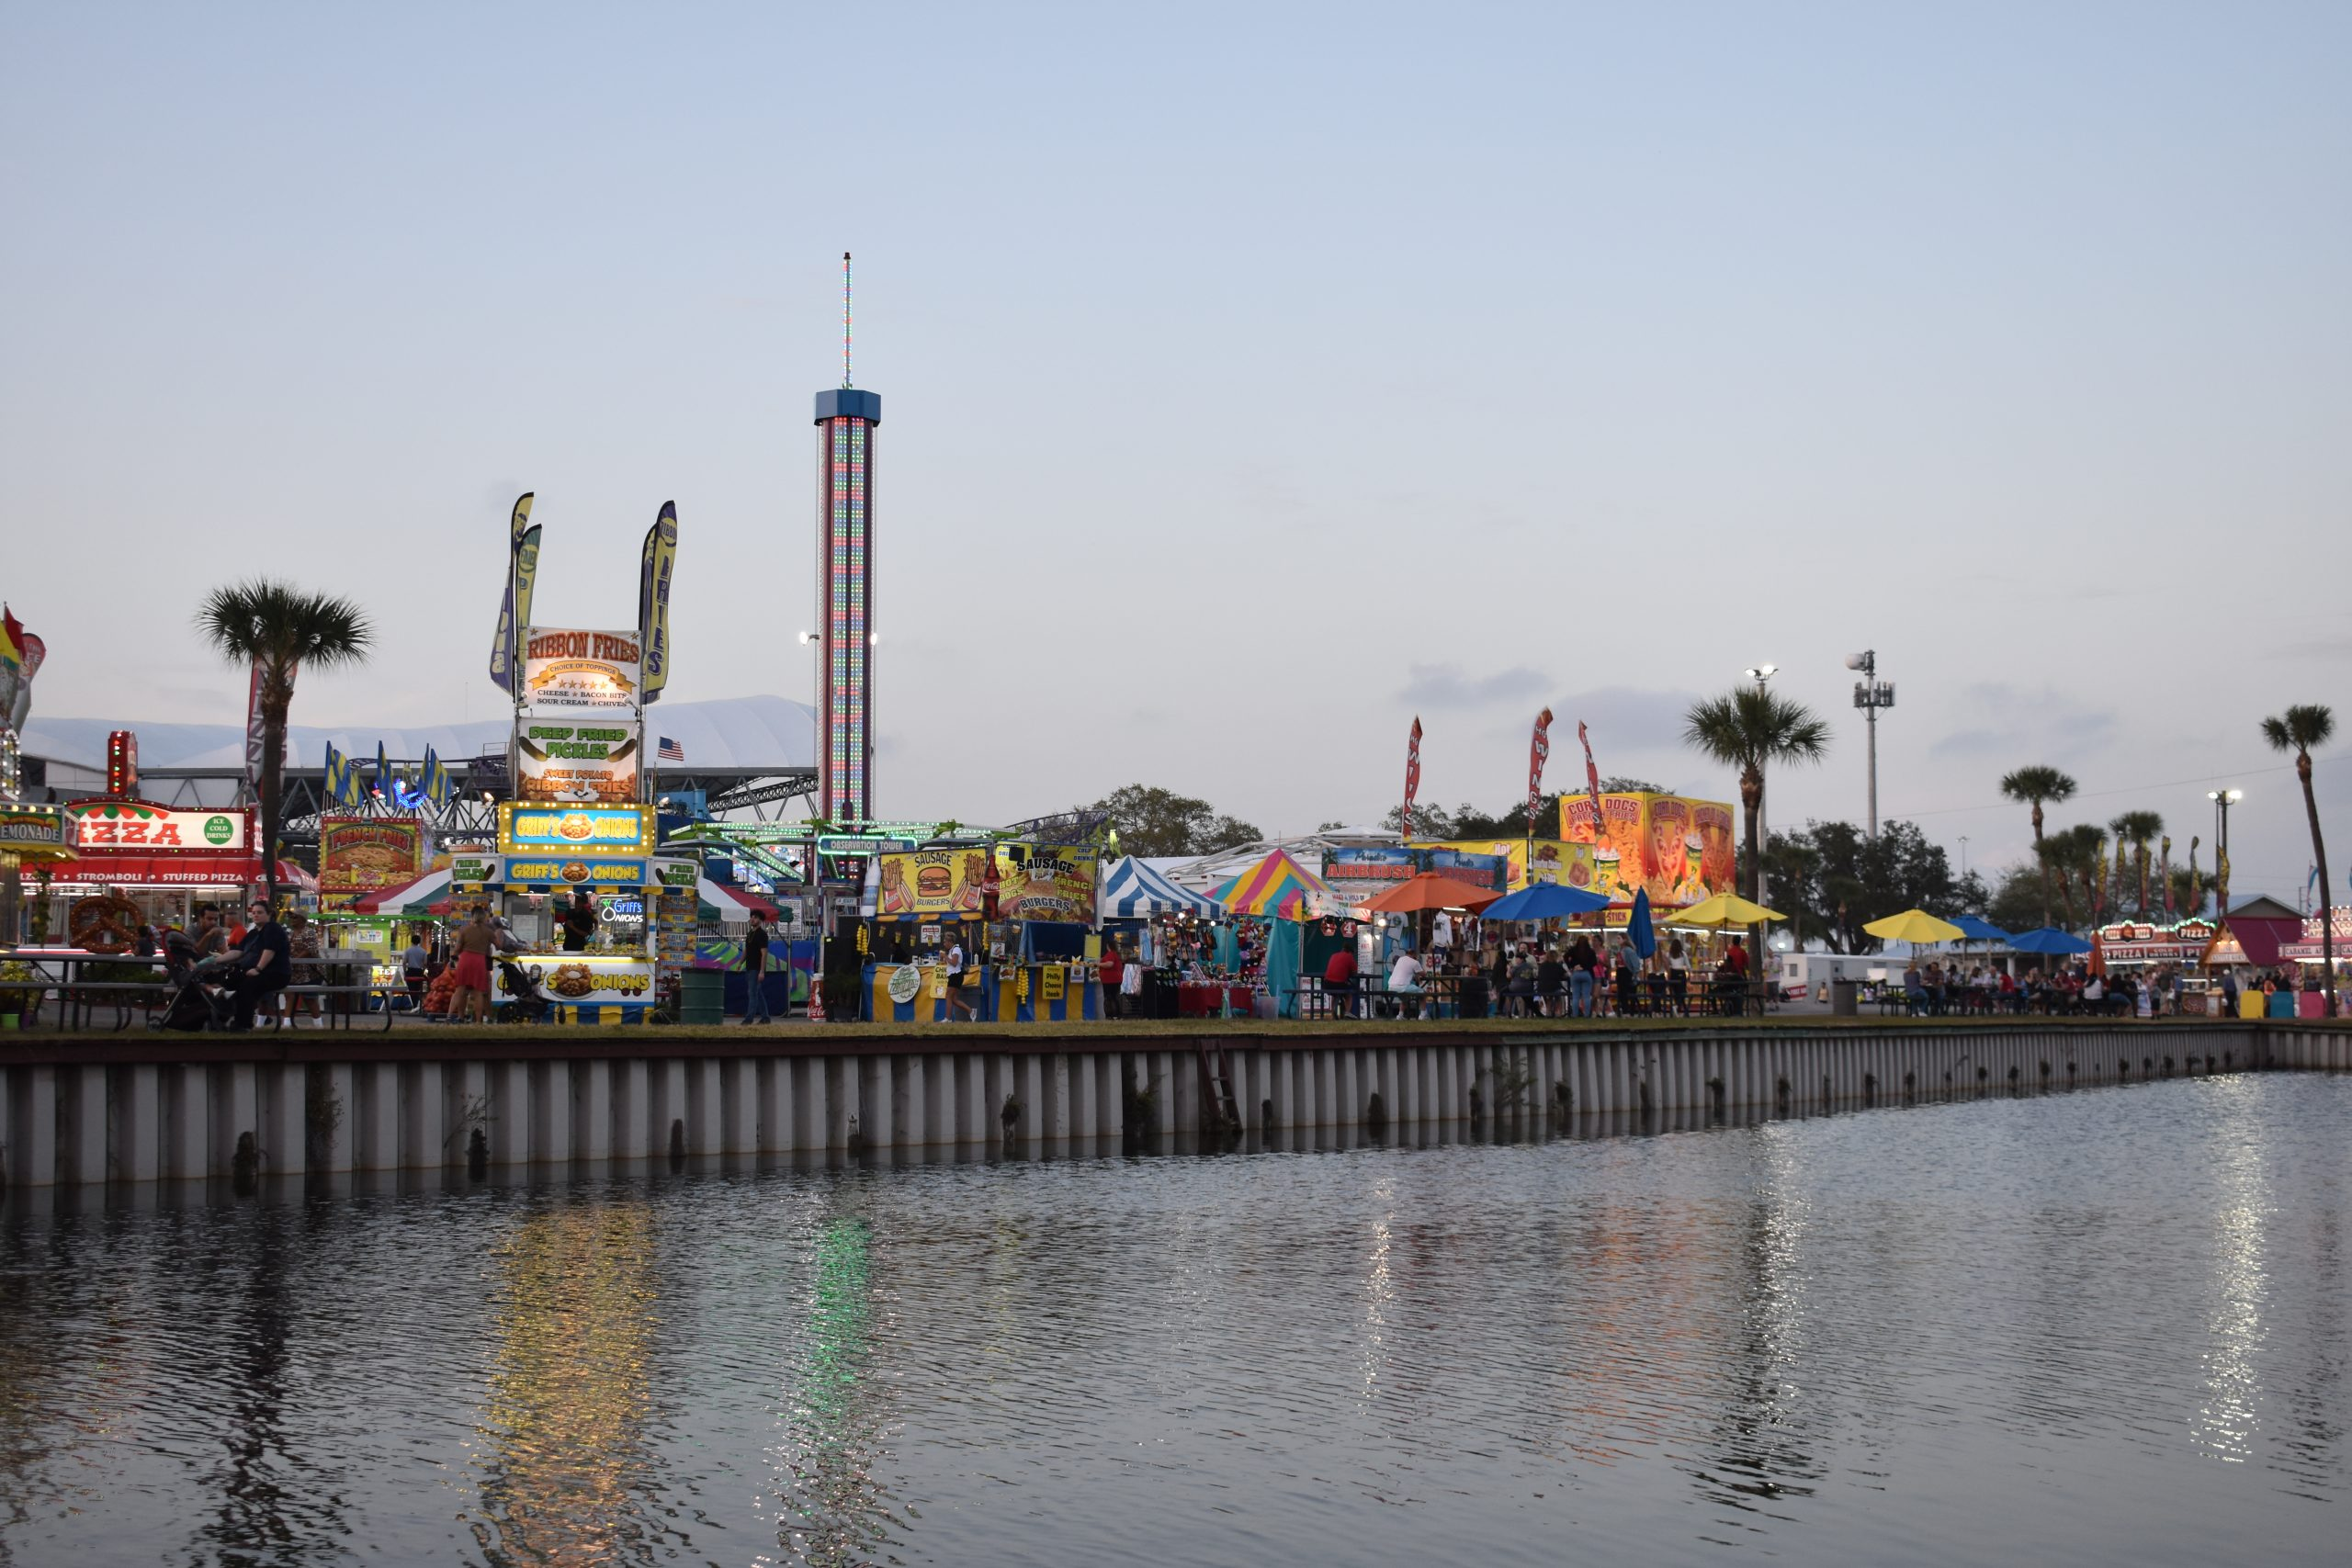 College Night shines bright at the Florida State Fair